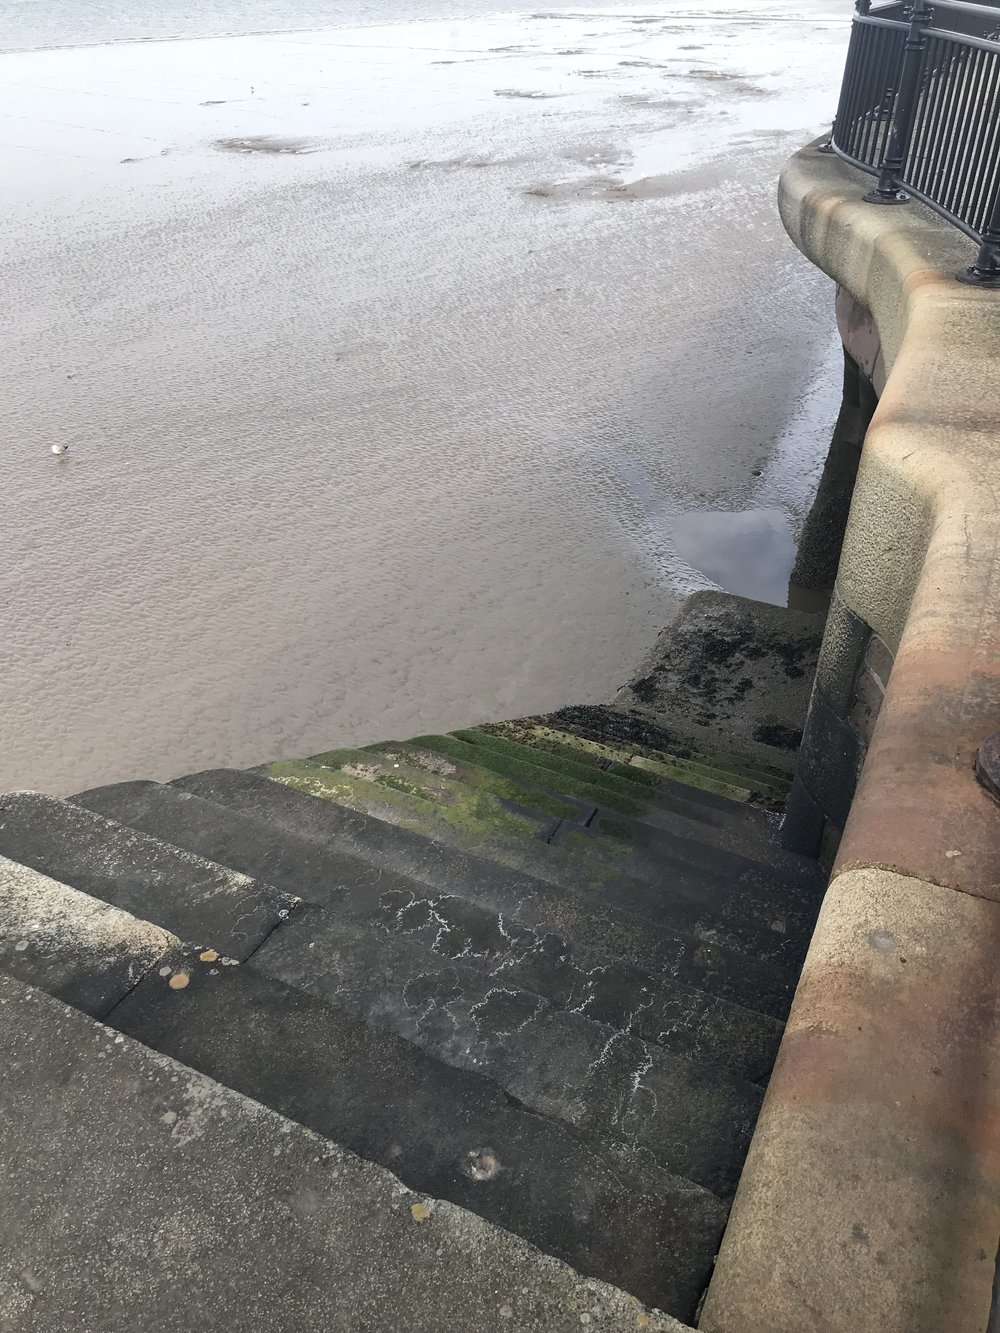 Stairs down to the river bed at low tide